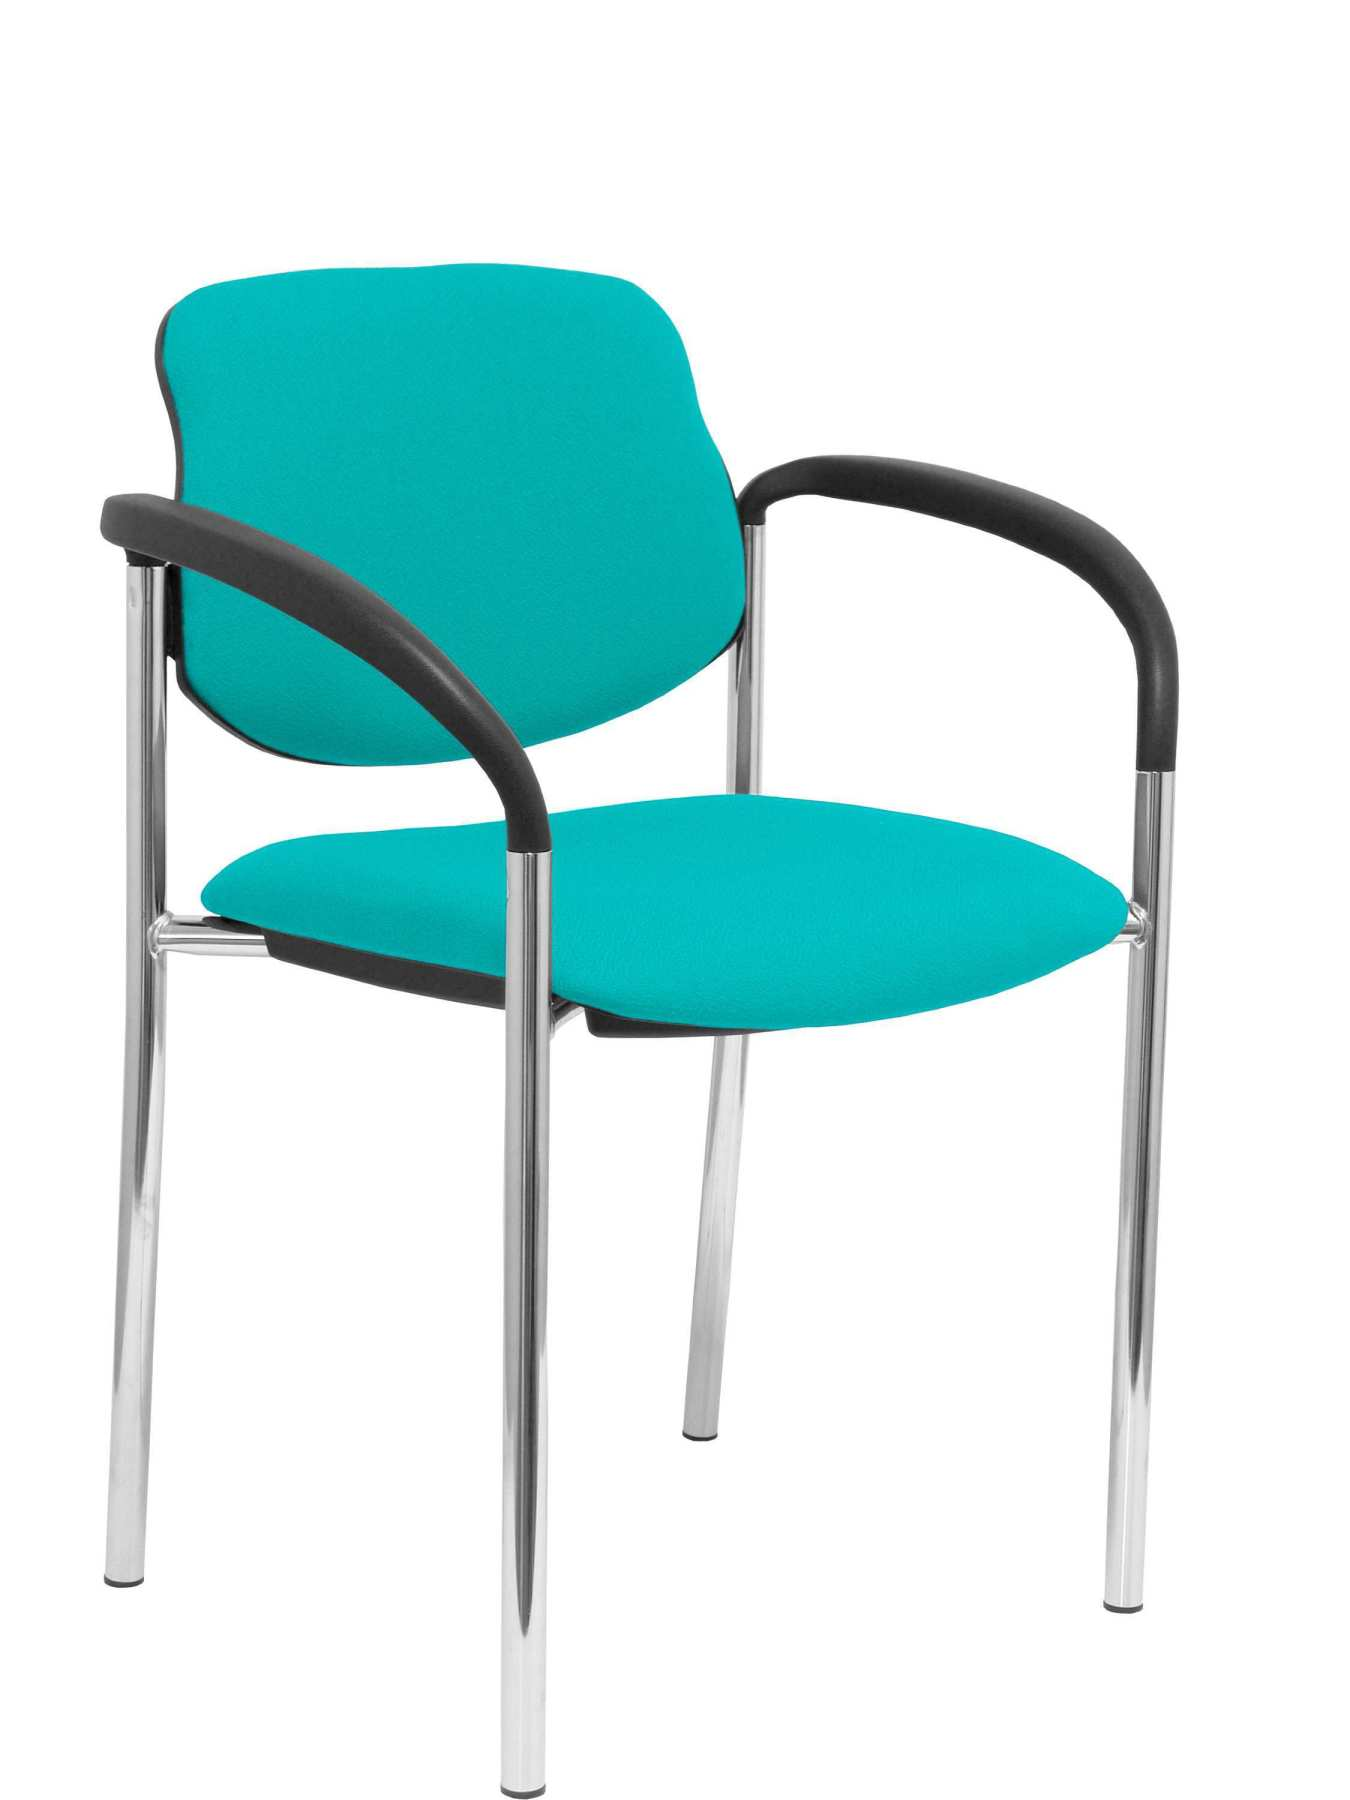 Confident Chair 4-leg And Estructrua Chrome Arms-Seat And Back Upholstered In Fabric BALI Green Color PI